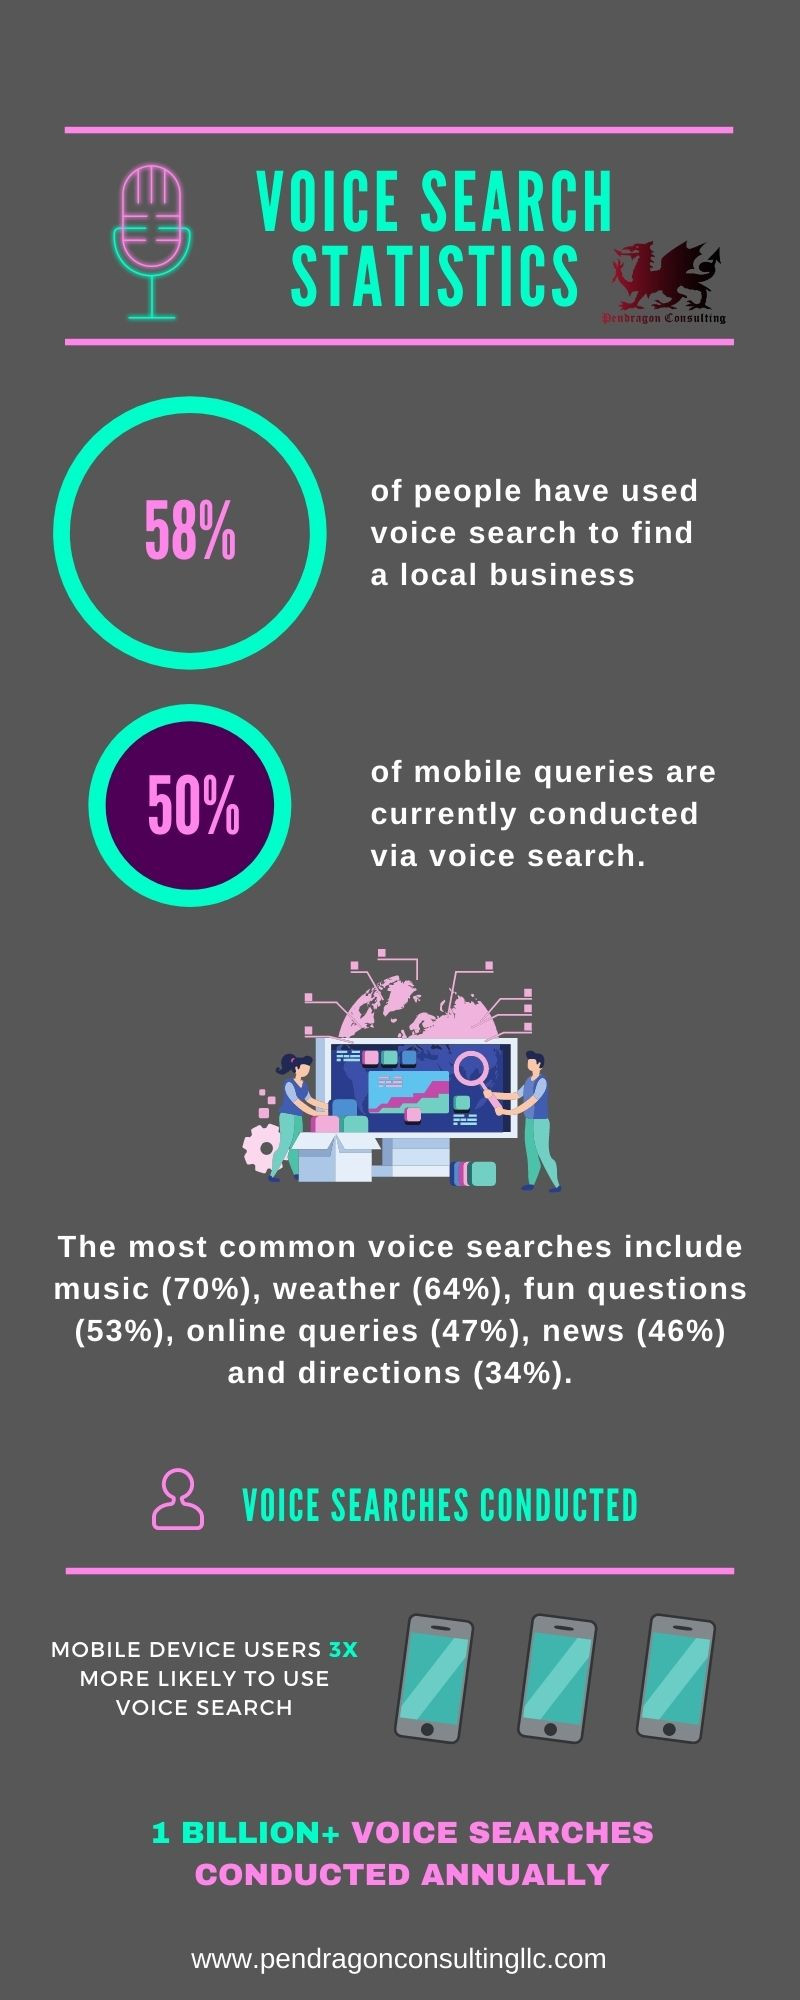 Voice Search Statistics: How to Optimize for Voice Search